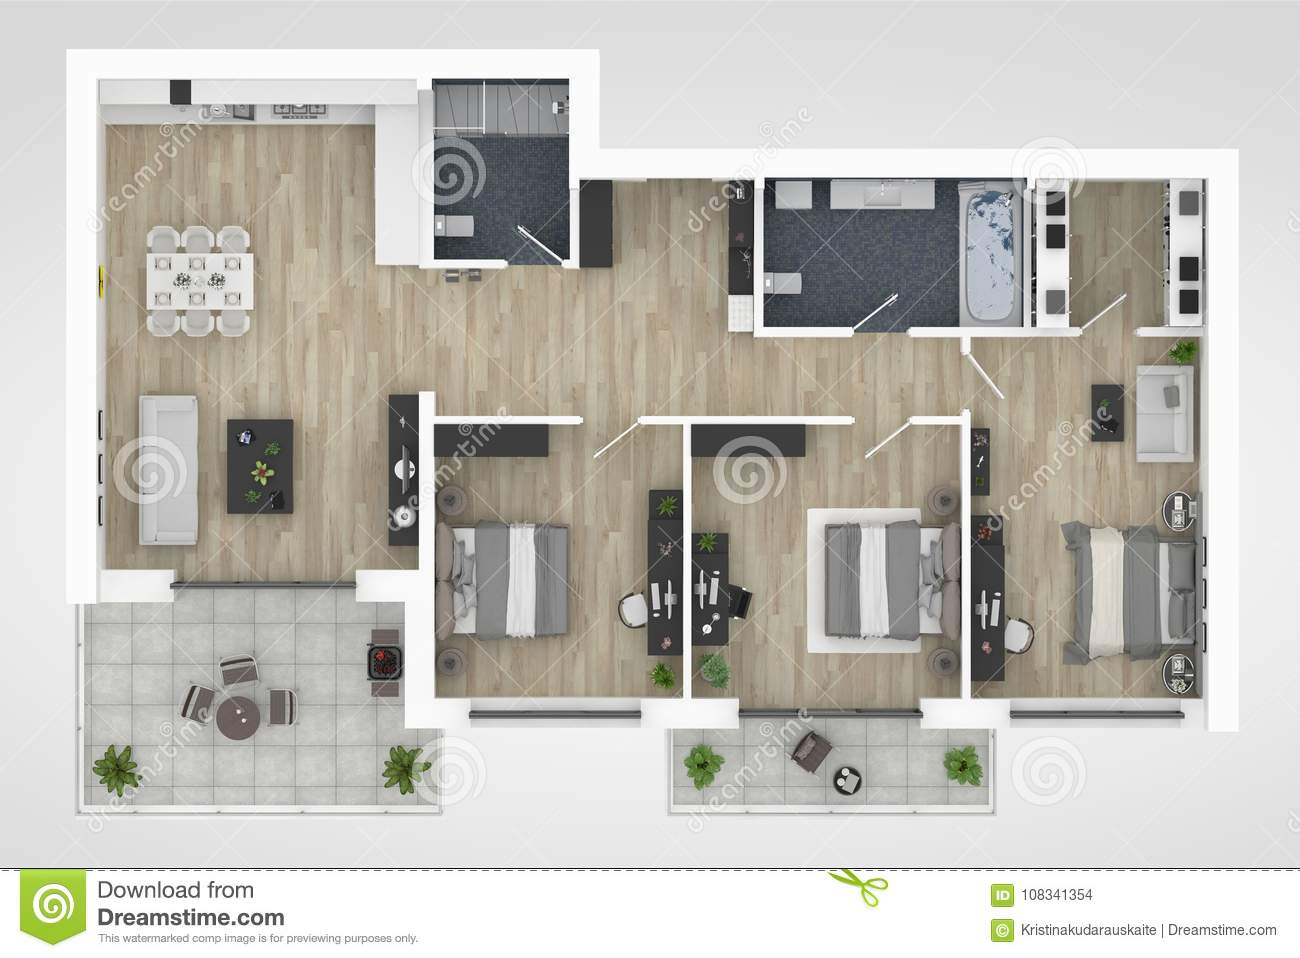 Floor Plan Of A House Top View 3D Illustration. Open Concept ...